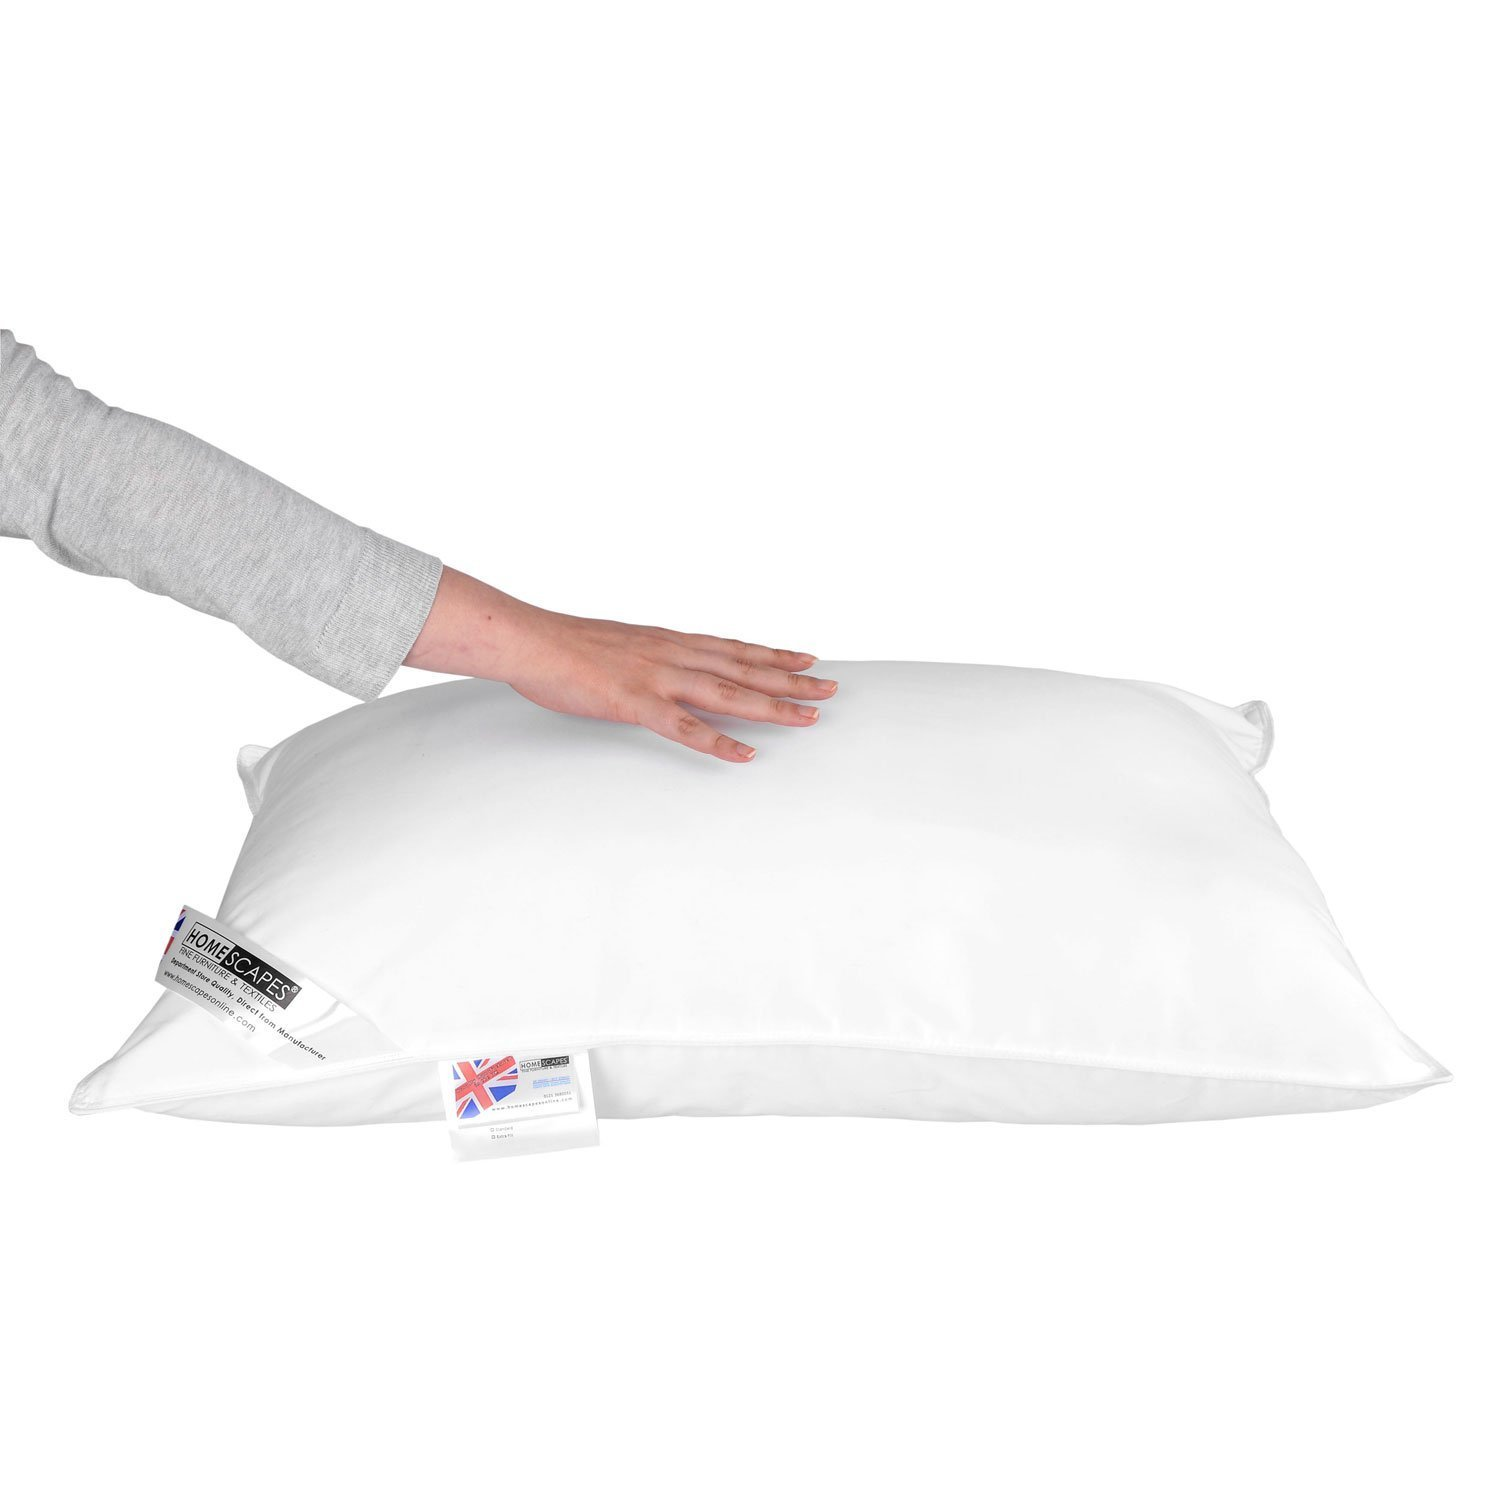 Homescapes - Super Microfibre Bounce Back Pillow - Single - 5 Star Hotel Quality - The Best Synthetic Pillow Available from Homescapes - NOT HOLLOW FIBRE - EXCELLENT for Allergy Sufferers. Goose Down Like - Soft to Medium Support